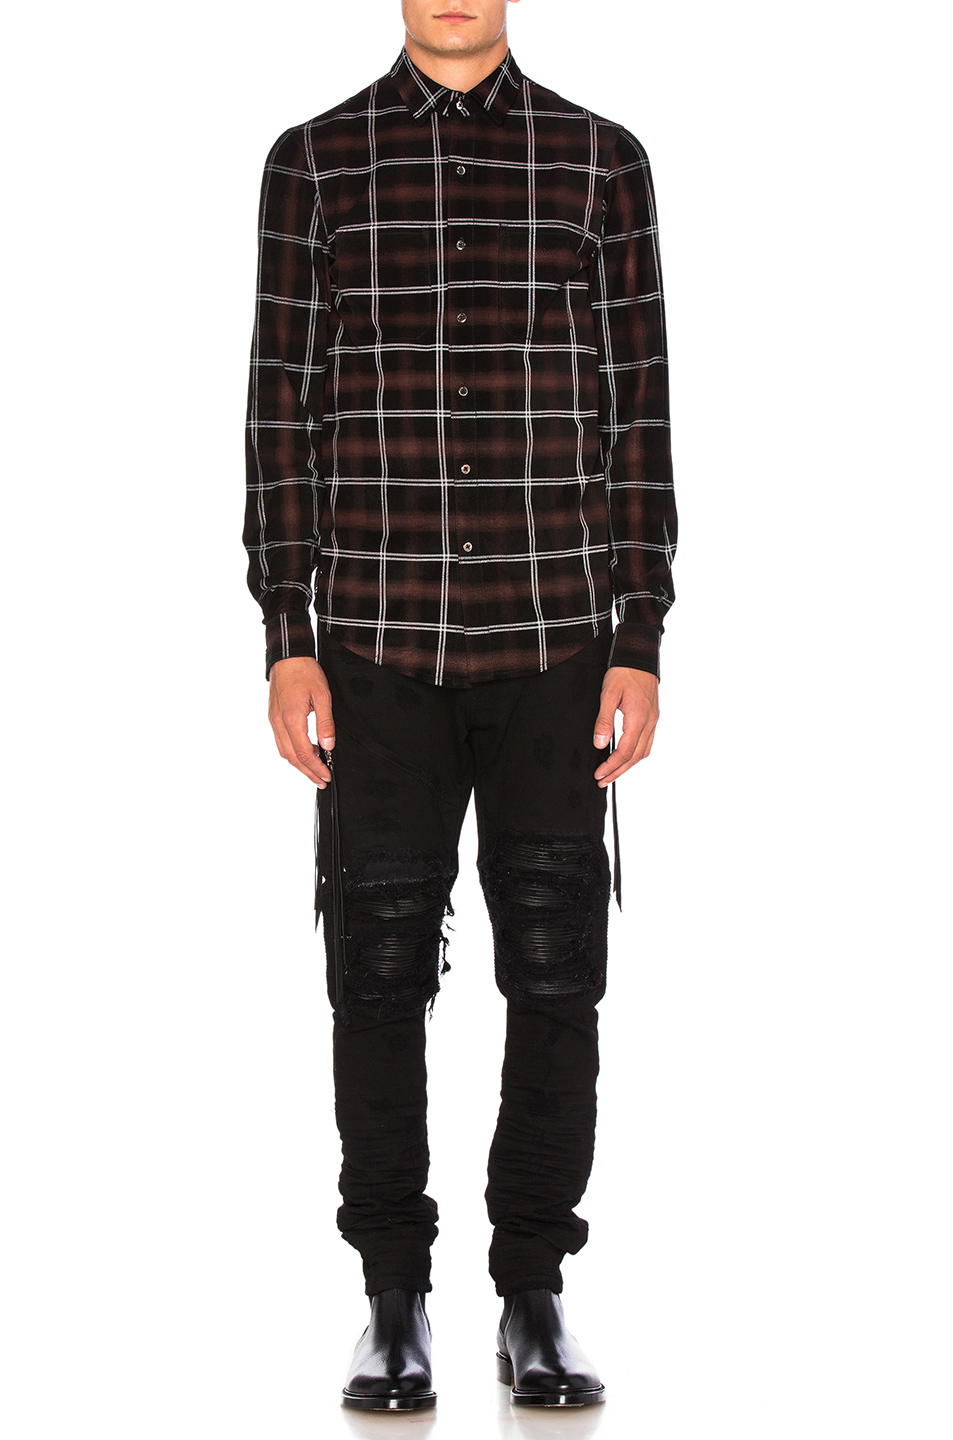 Amiri Suede Plaid Shirt in Red,Checkered & Plaid